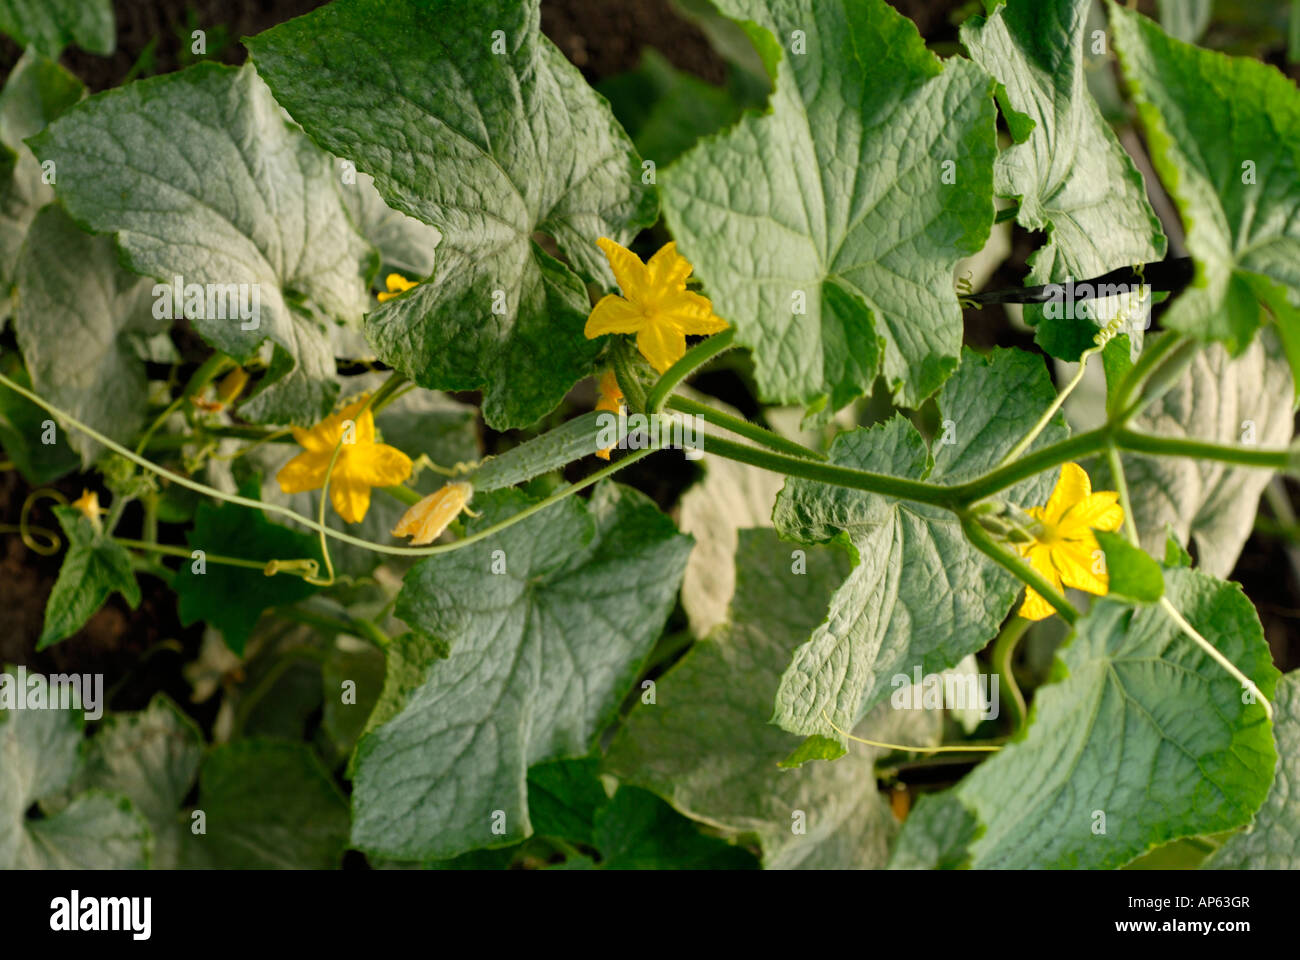 organic cucumber plant leaves and flowers Stock Photo: 15687478 - Alamy